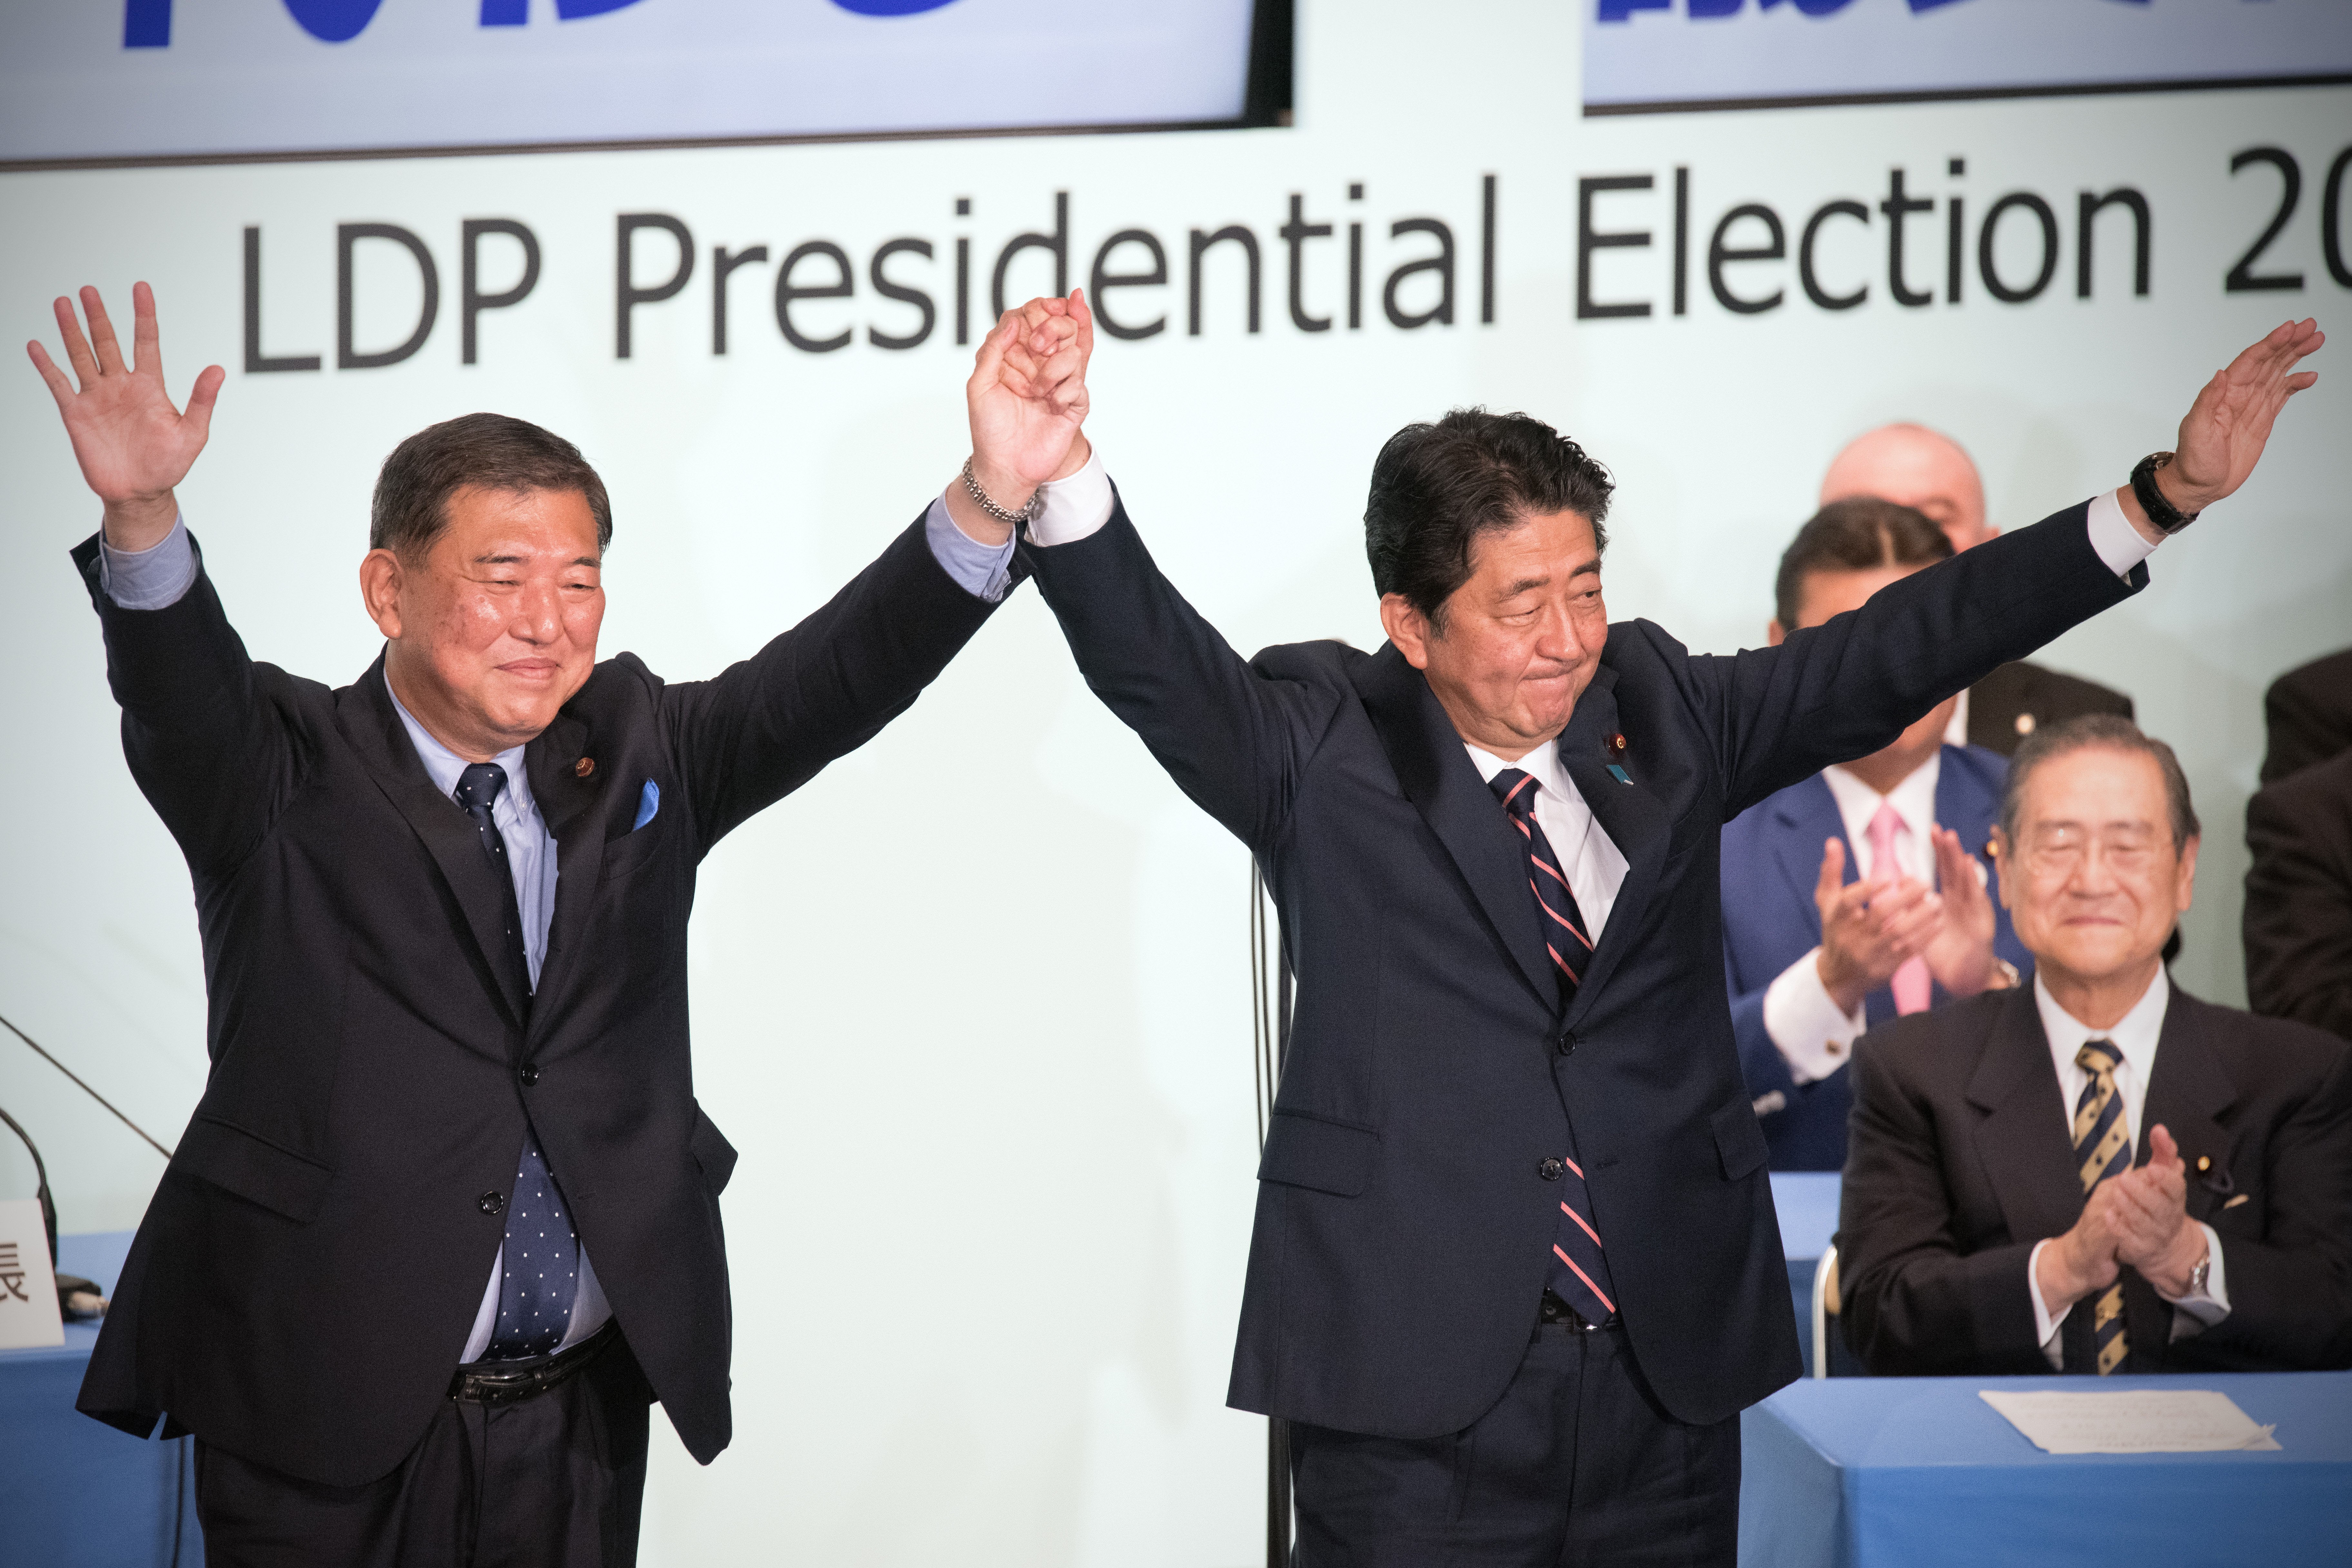 Japan's Prime Minister Shinzo Abe (R) celebrates with Shigeru Ishiba, the former defence minister who ran against him, after winning the Liberal Democratic Party leadership contest on September 20, 2018 in Tokyo, Japan.